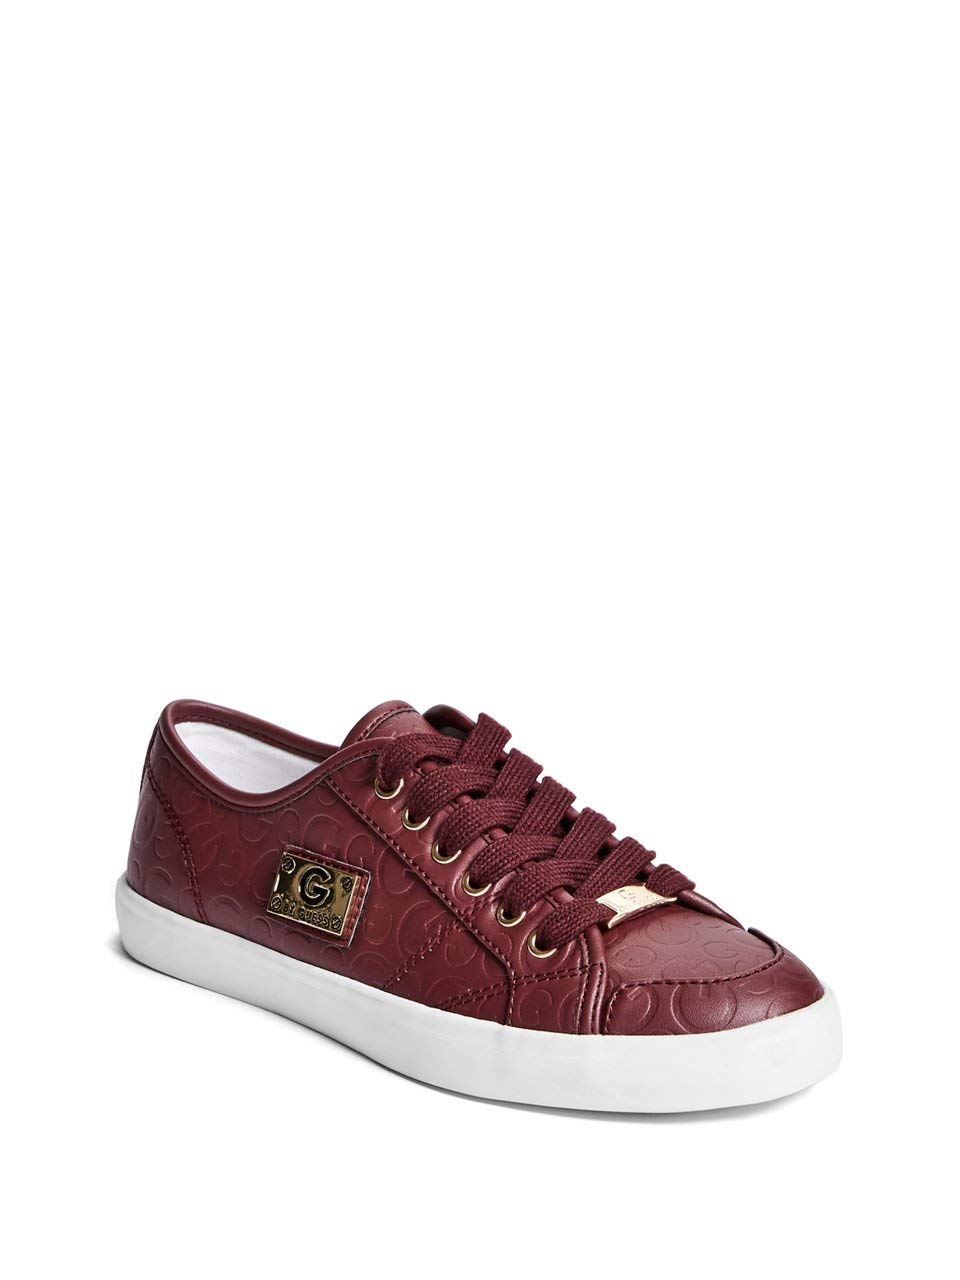 G by GUESS Women's Matrix Logo-Embossed Sneakers